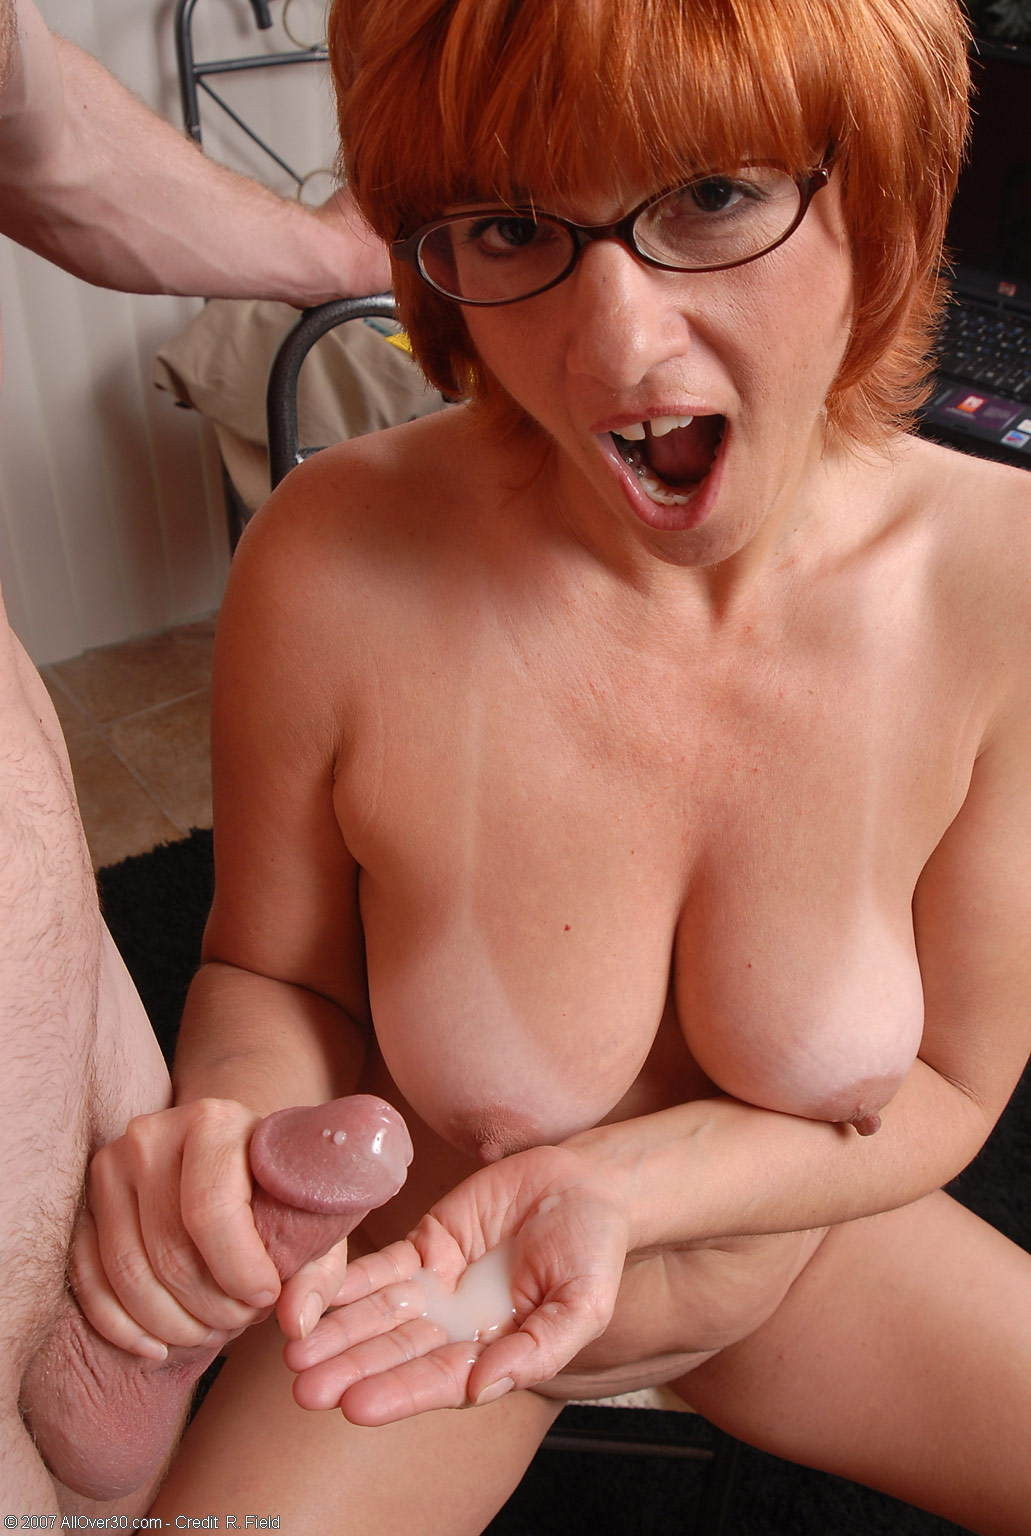 handjob movie collection Free